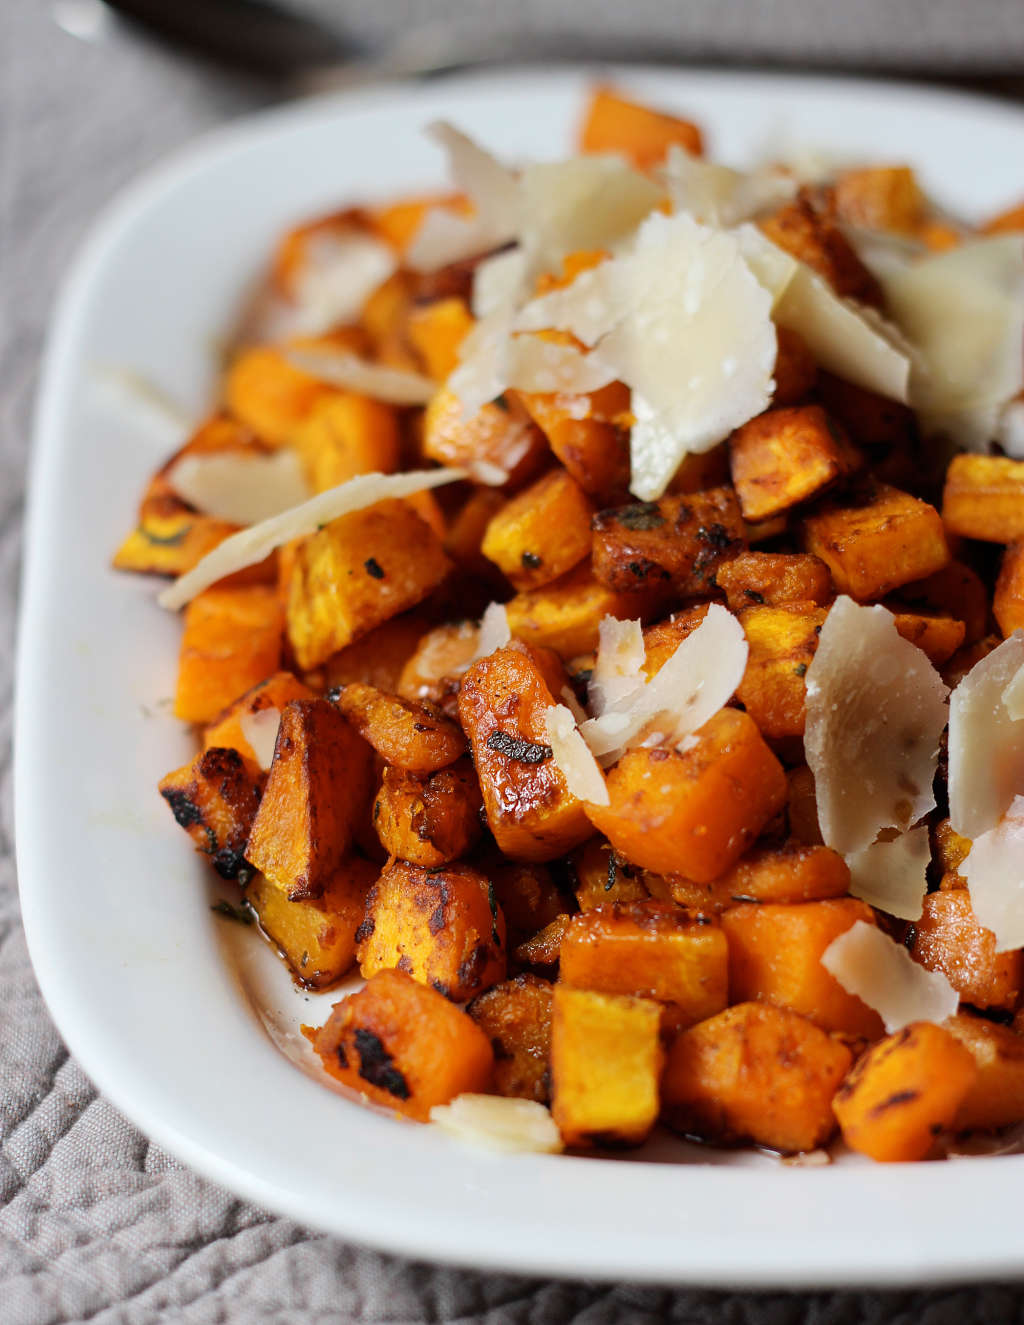 Side Dish Recipe for Roast Chicken: Pan-Seared Butternut Squash with Balsamic & Parmigiano Shards